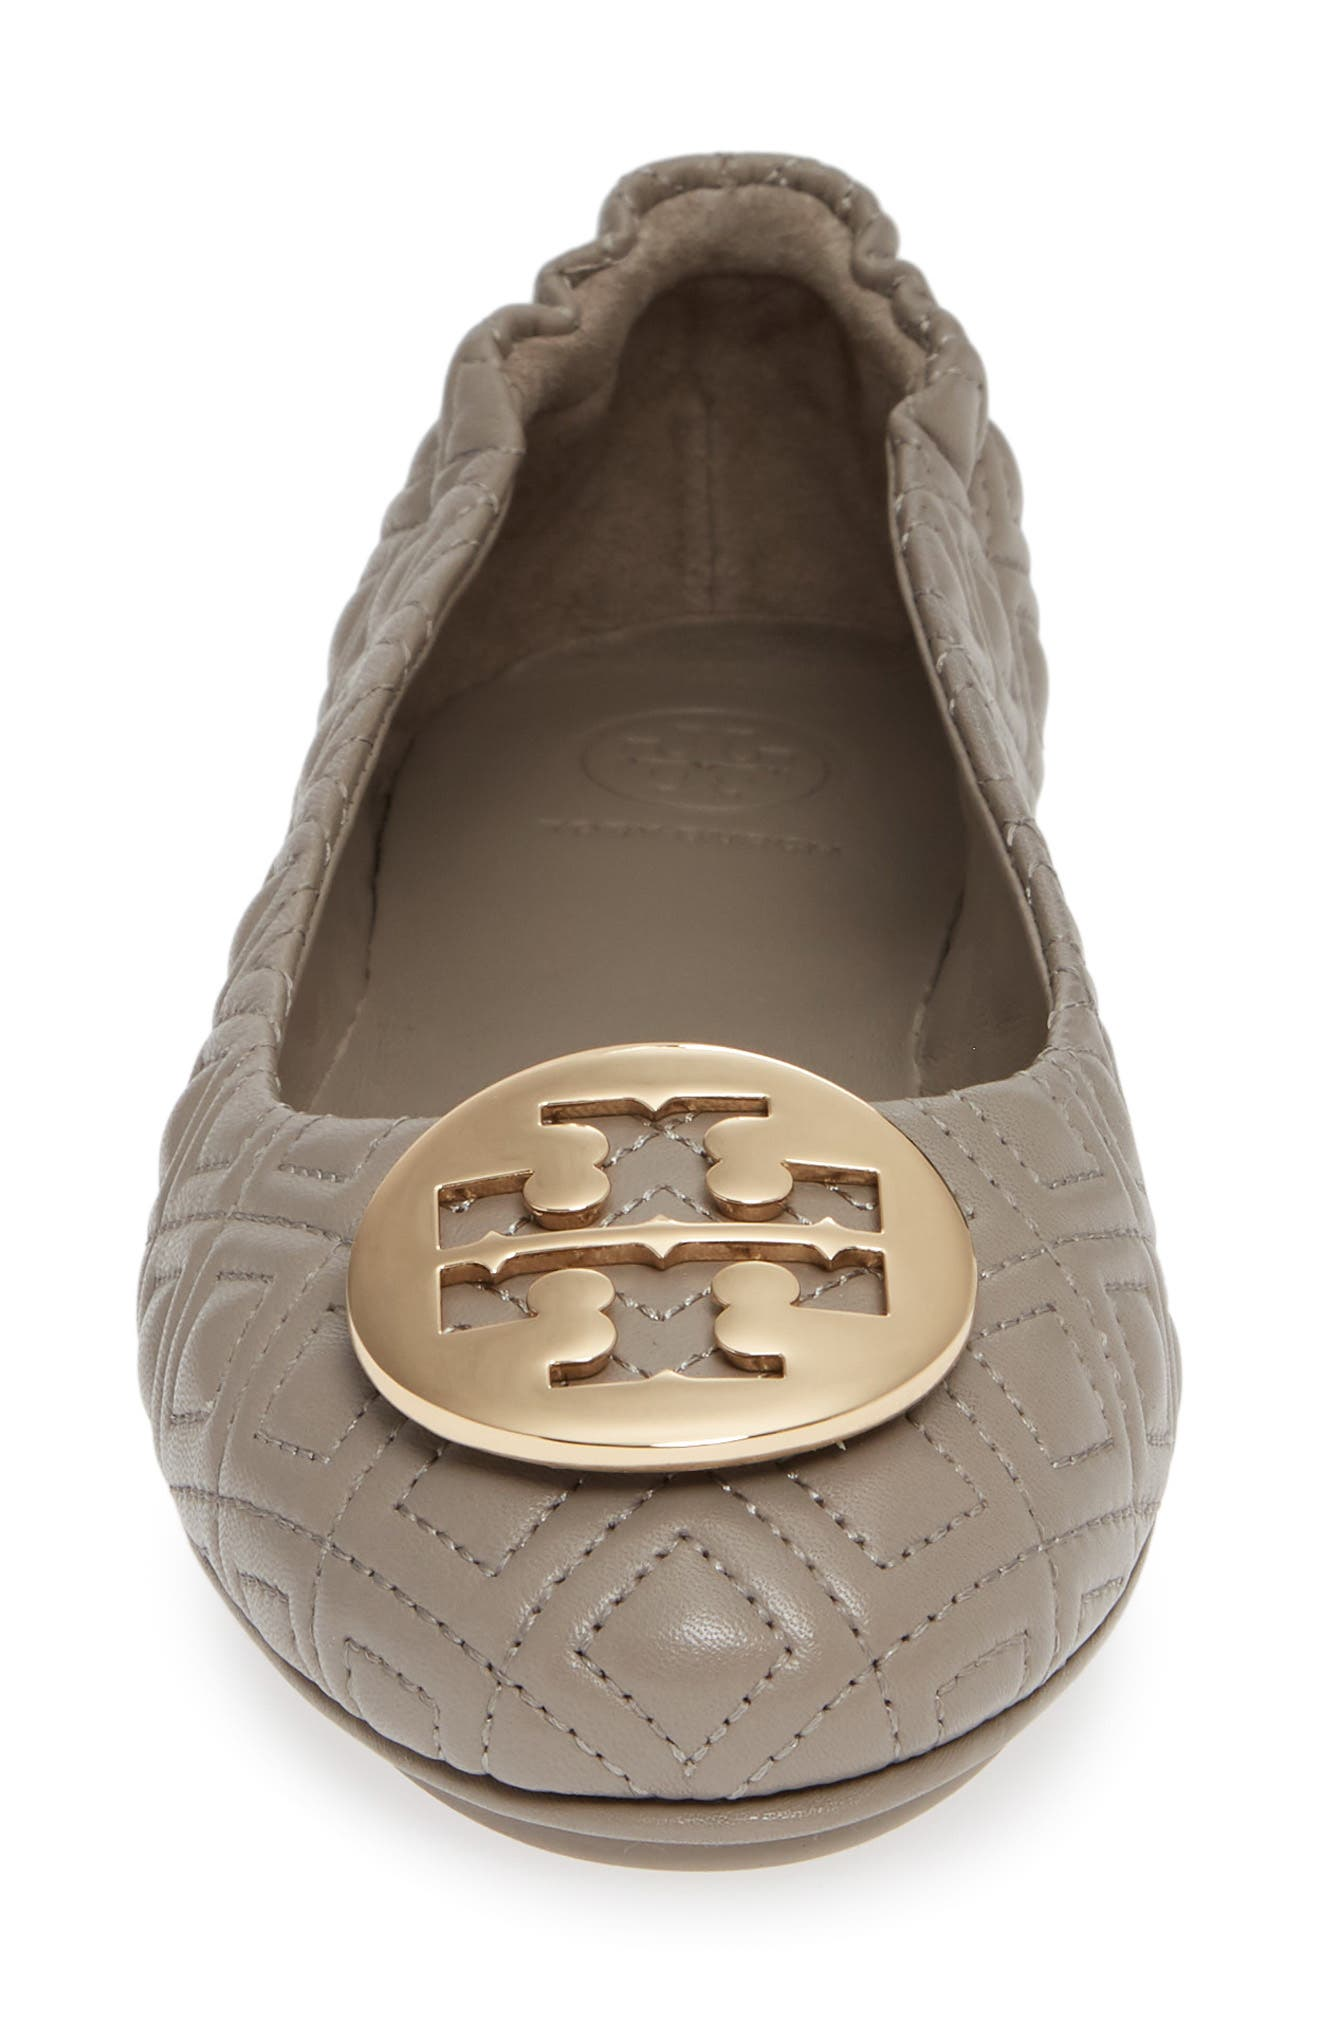 TORY BURCH, Quilted Minnie Flat, Alternate thumbnail 4, color, DUST STORM/ GOLD